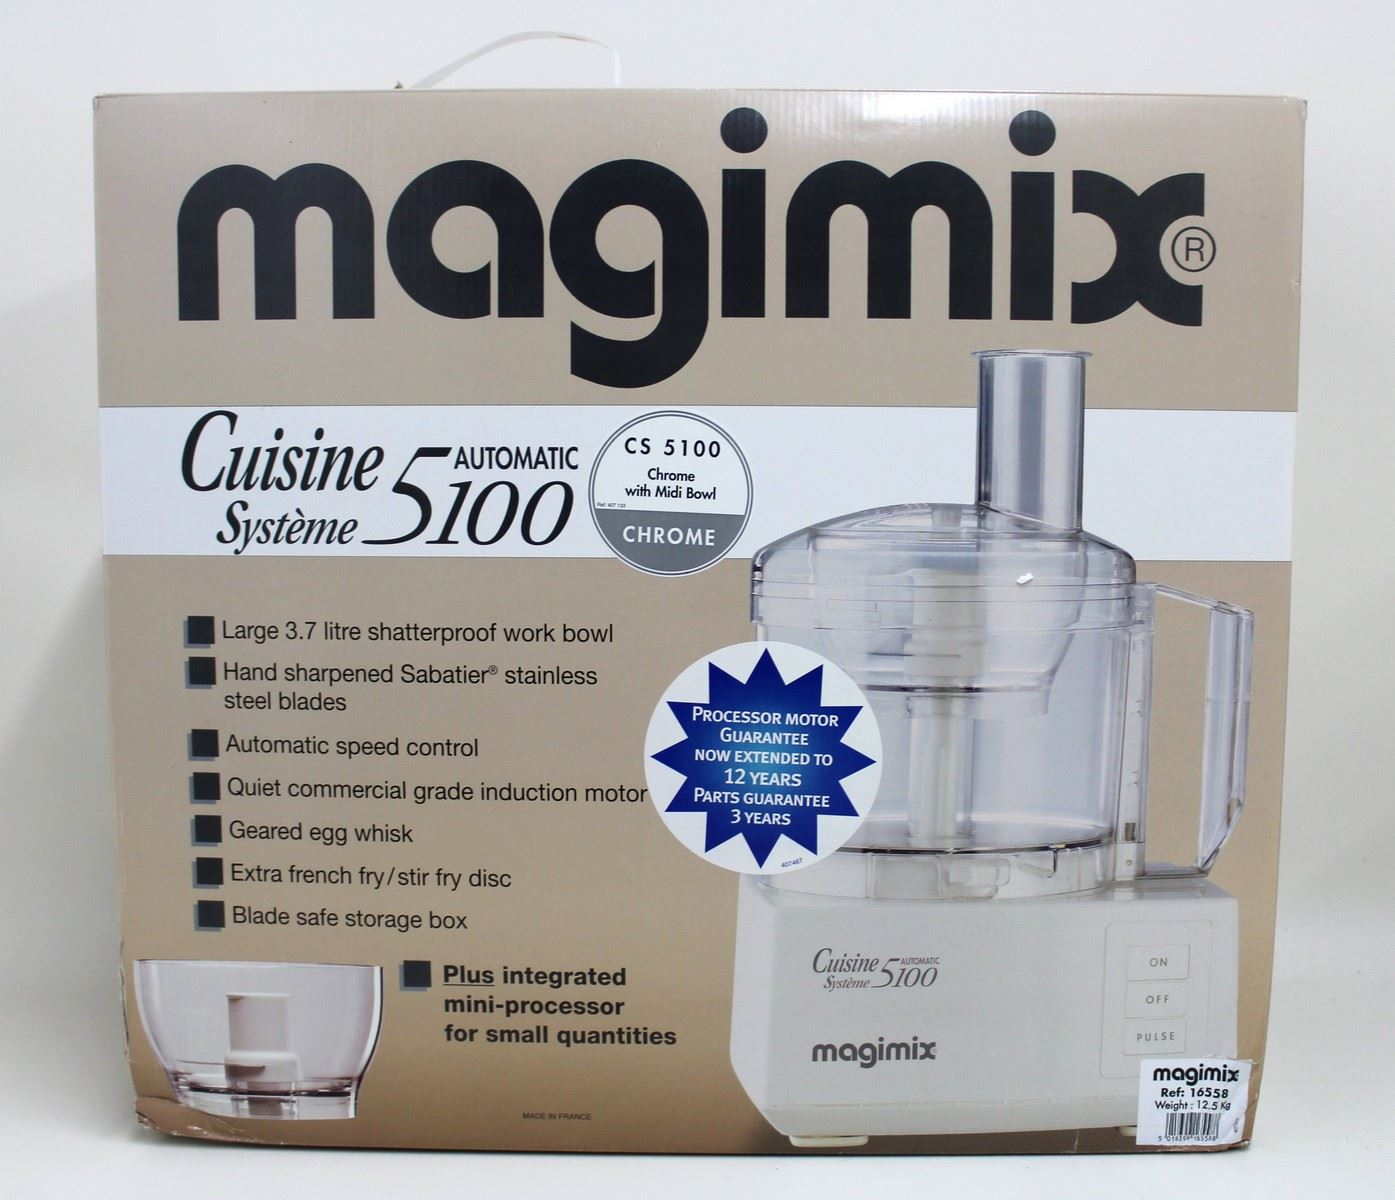 Bnib magimix cs5100 chrome cuisine system food processor for Cuisine 5100 magimix